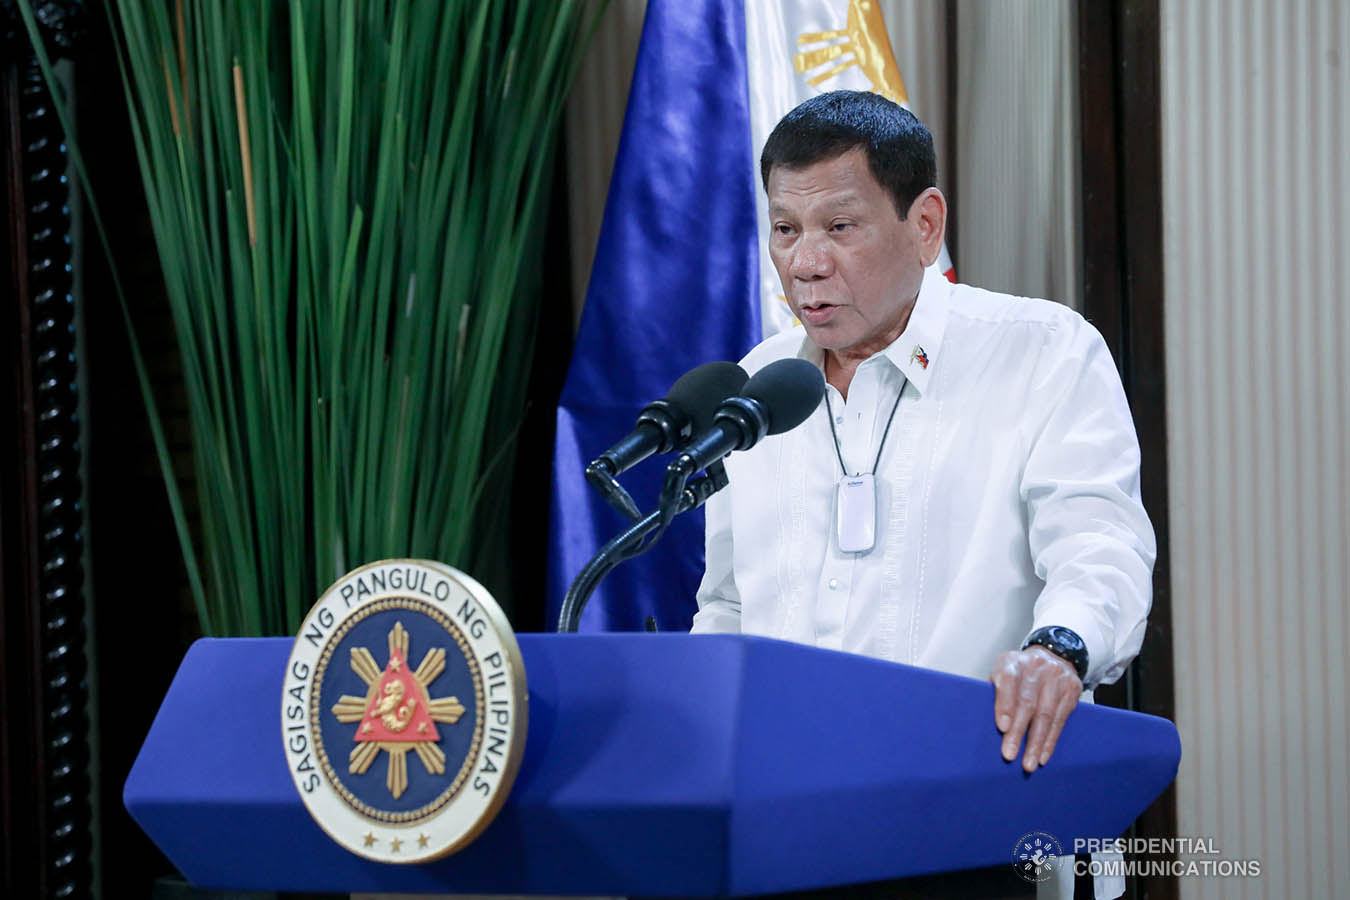 """President Rodrigo Roa Duterte delivers his speech during the simultaneous commencement exercises of the Philippine Military Academy """"Masidlawin"""" Class of 2020 and the Philippine National Police Academy """"Mandayug"""" Class of 2020 at the Malago Clubhouse in Malacañang, Manila on May 22, 2020. The commencement exercises were held online while proper social distancing protocols were observed amid the COVID-19 pandemic. TOTO LOZANO/PRESIDENTIAL PHOTO"""